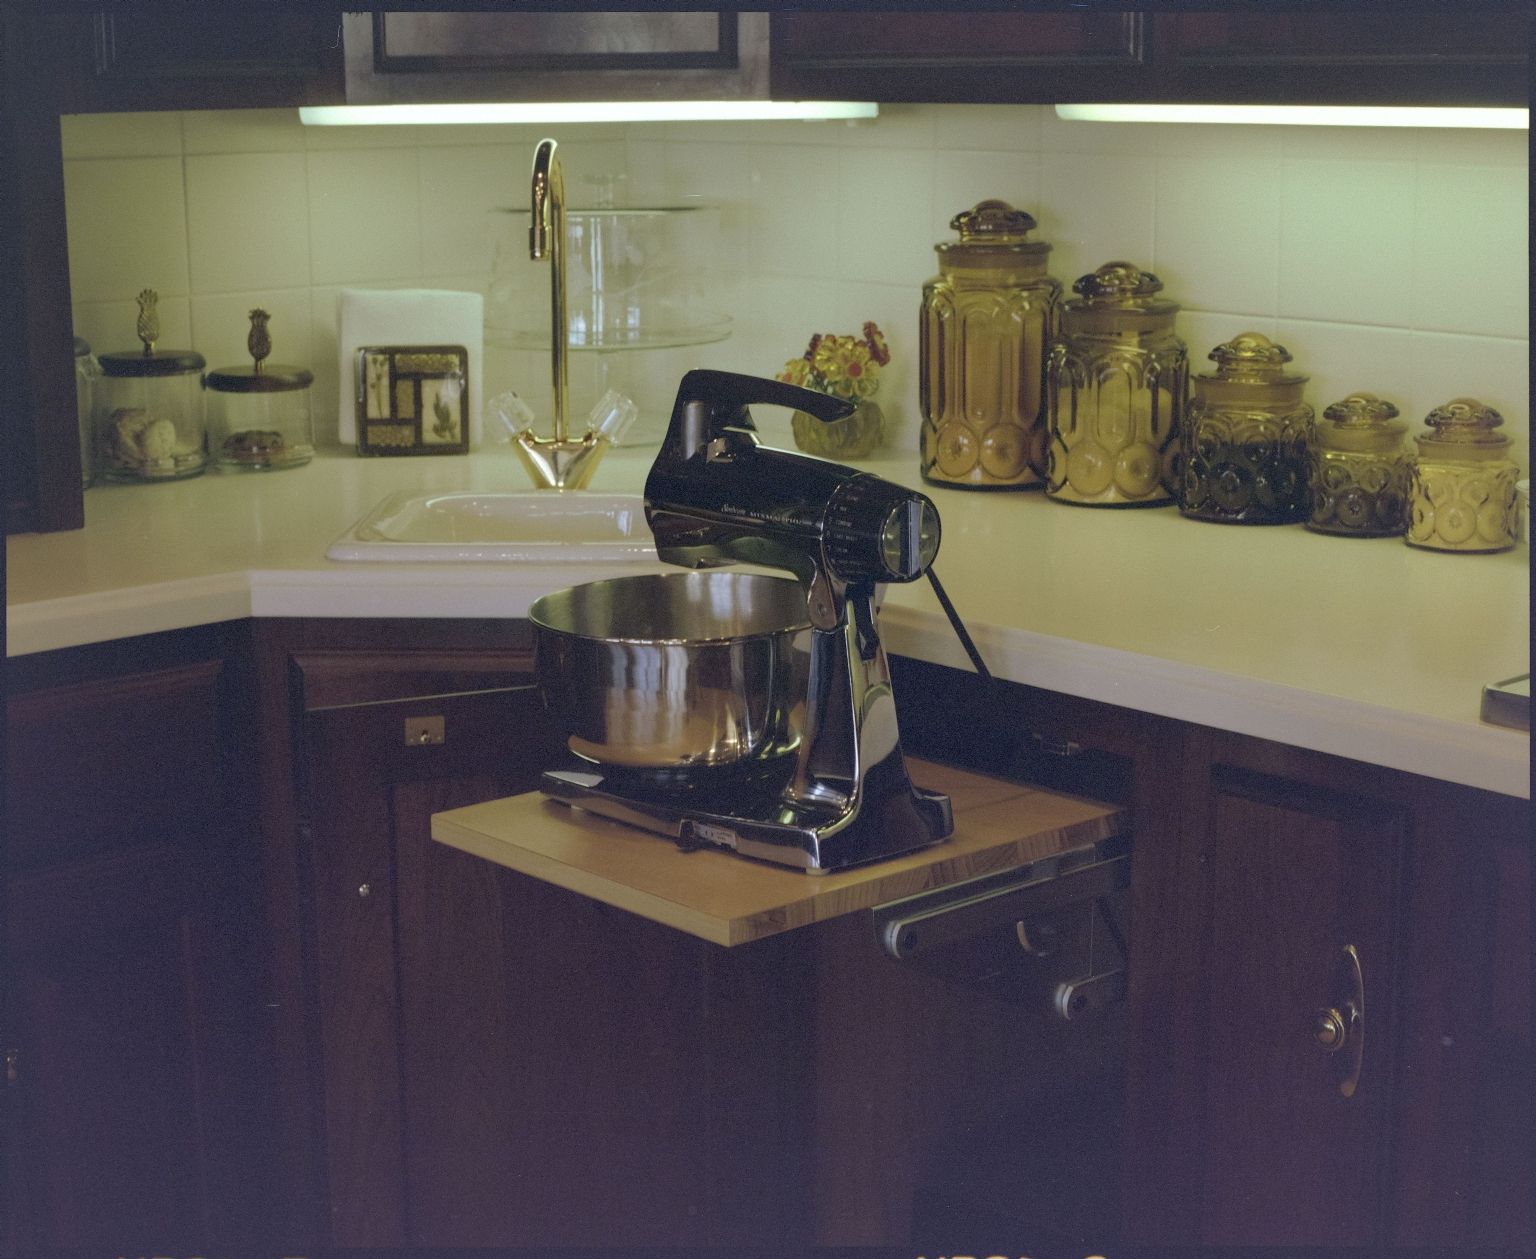 Kitchens Incorporated